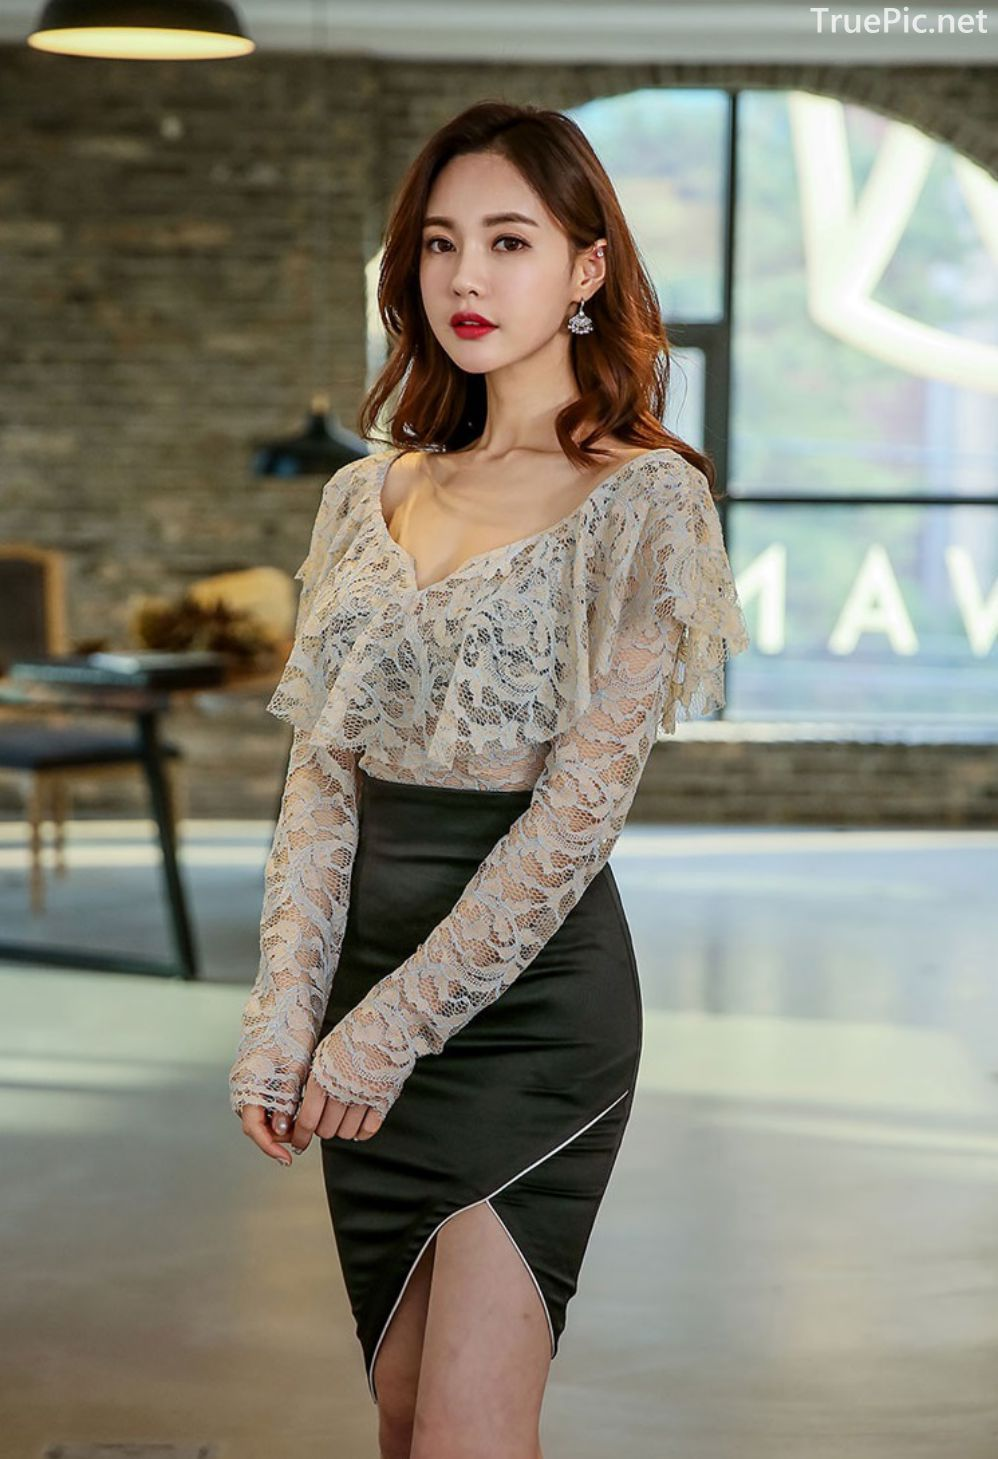 Korean Fashion Model - Hyemi - Indoor Photoshoot Collection - TruePic.net - Picture 9